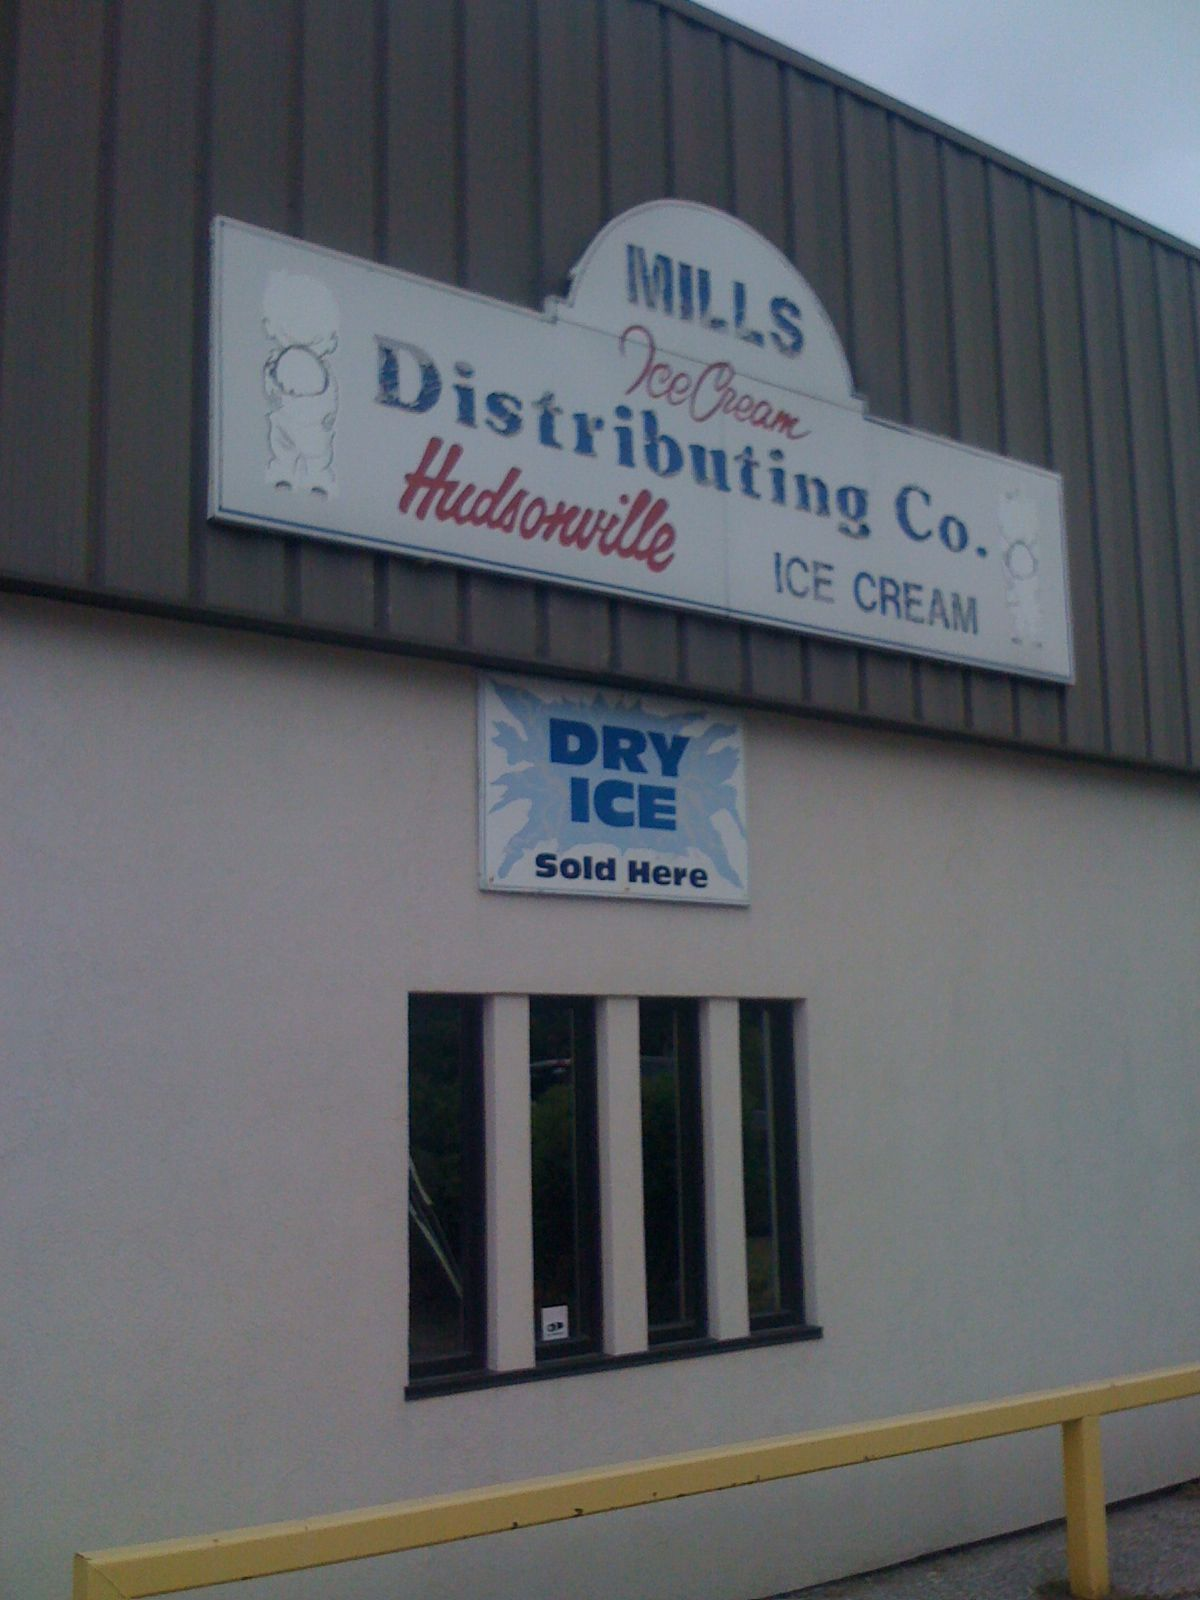 Where to get Ice Cream and Dry Ice in Muskegon   DrKnife iPhone Photo Blog